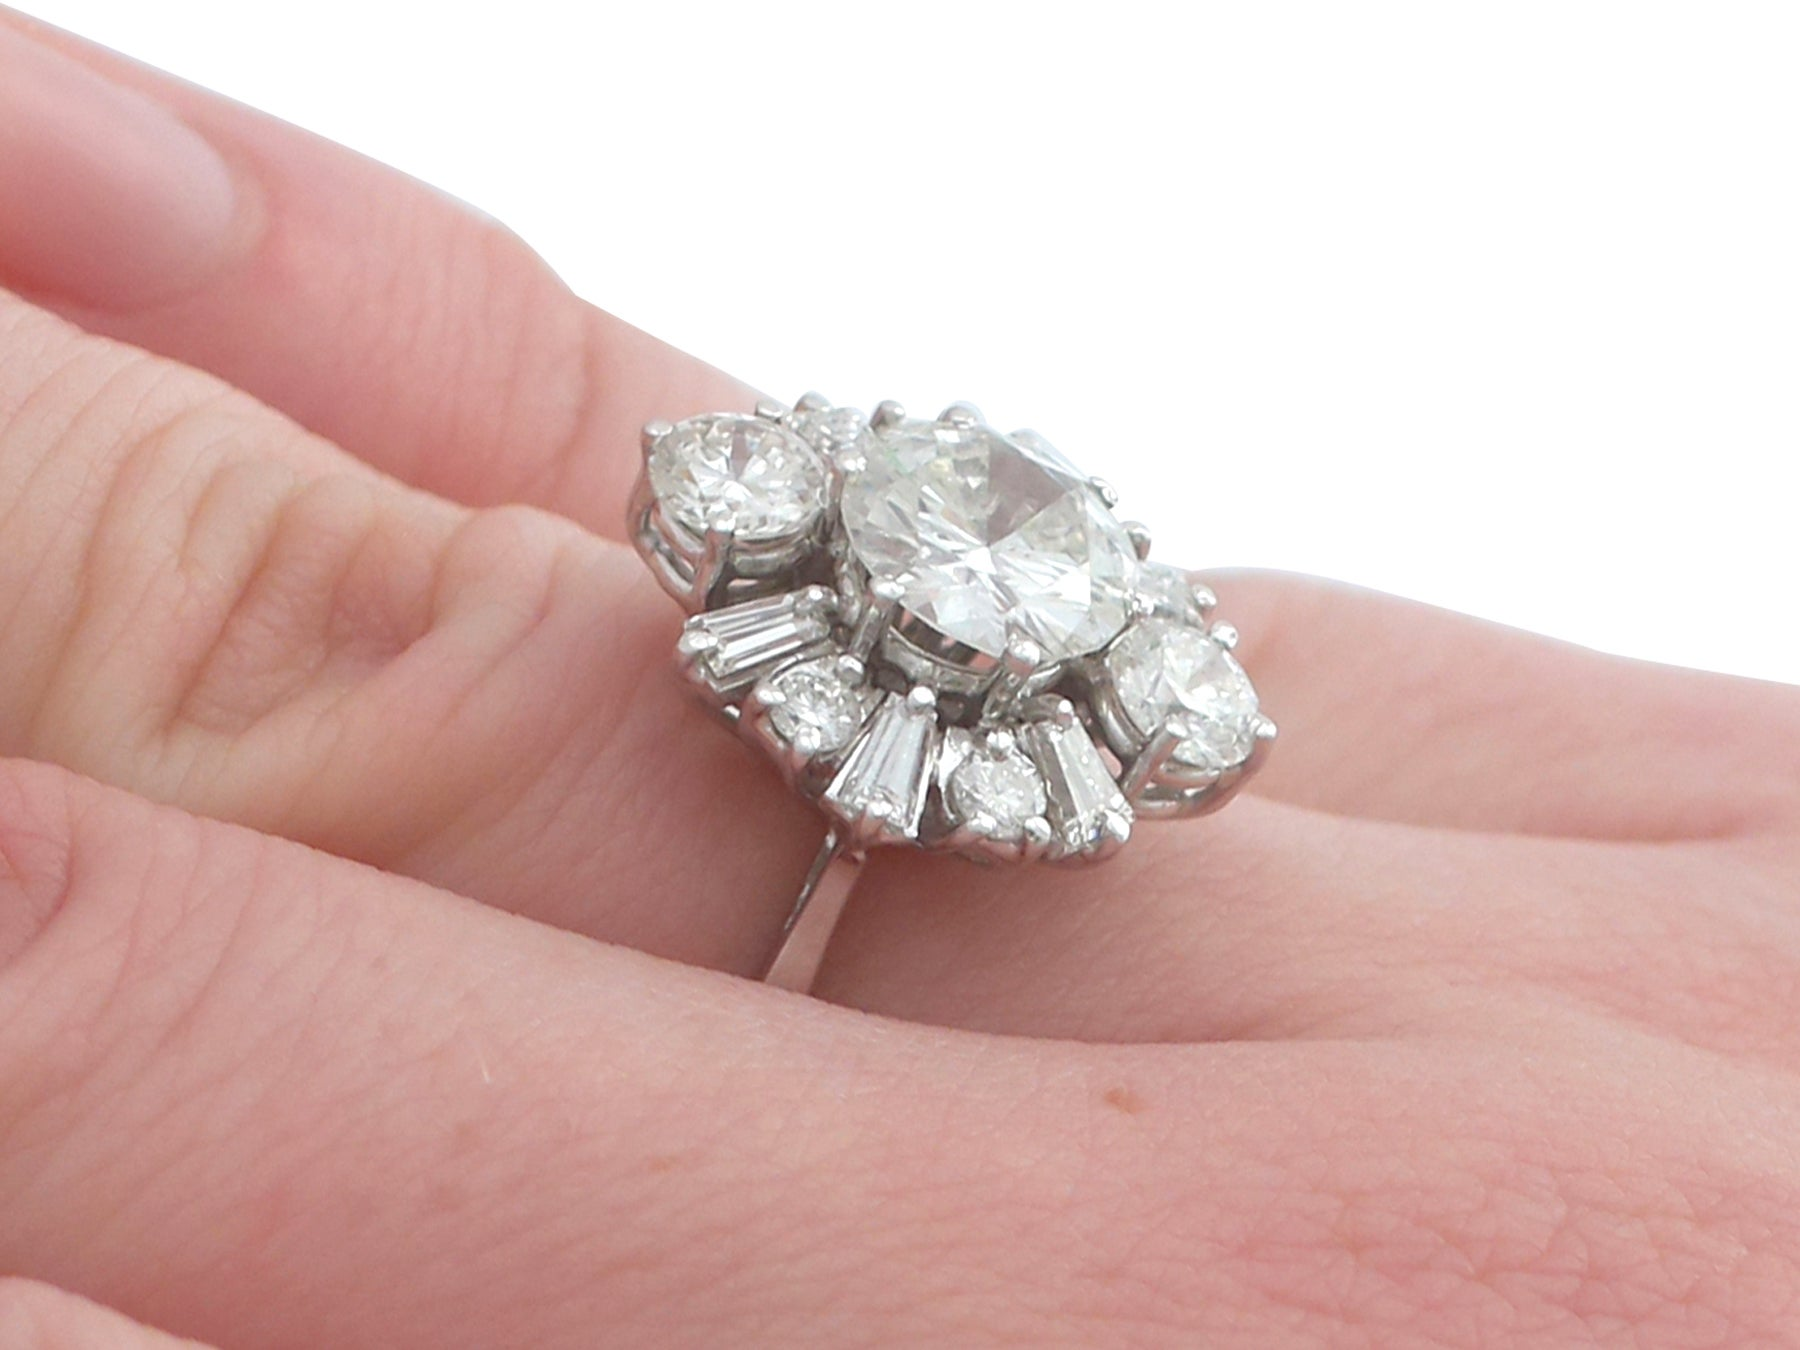 1950s 3.17 Carat Diamond and White Gold Cluster Ring For Sale at 1stdibs